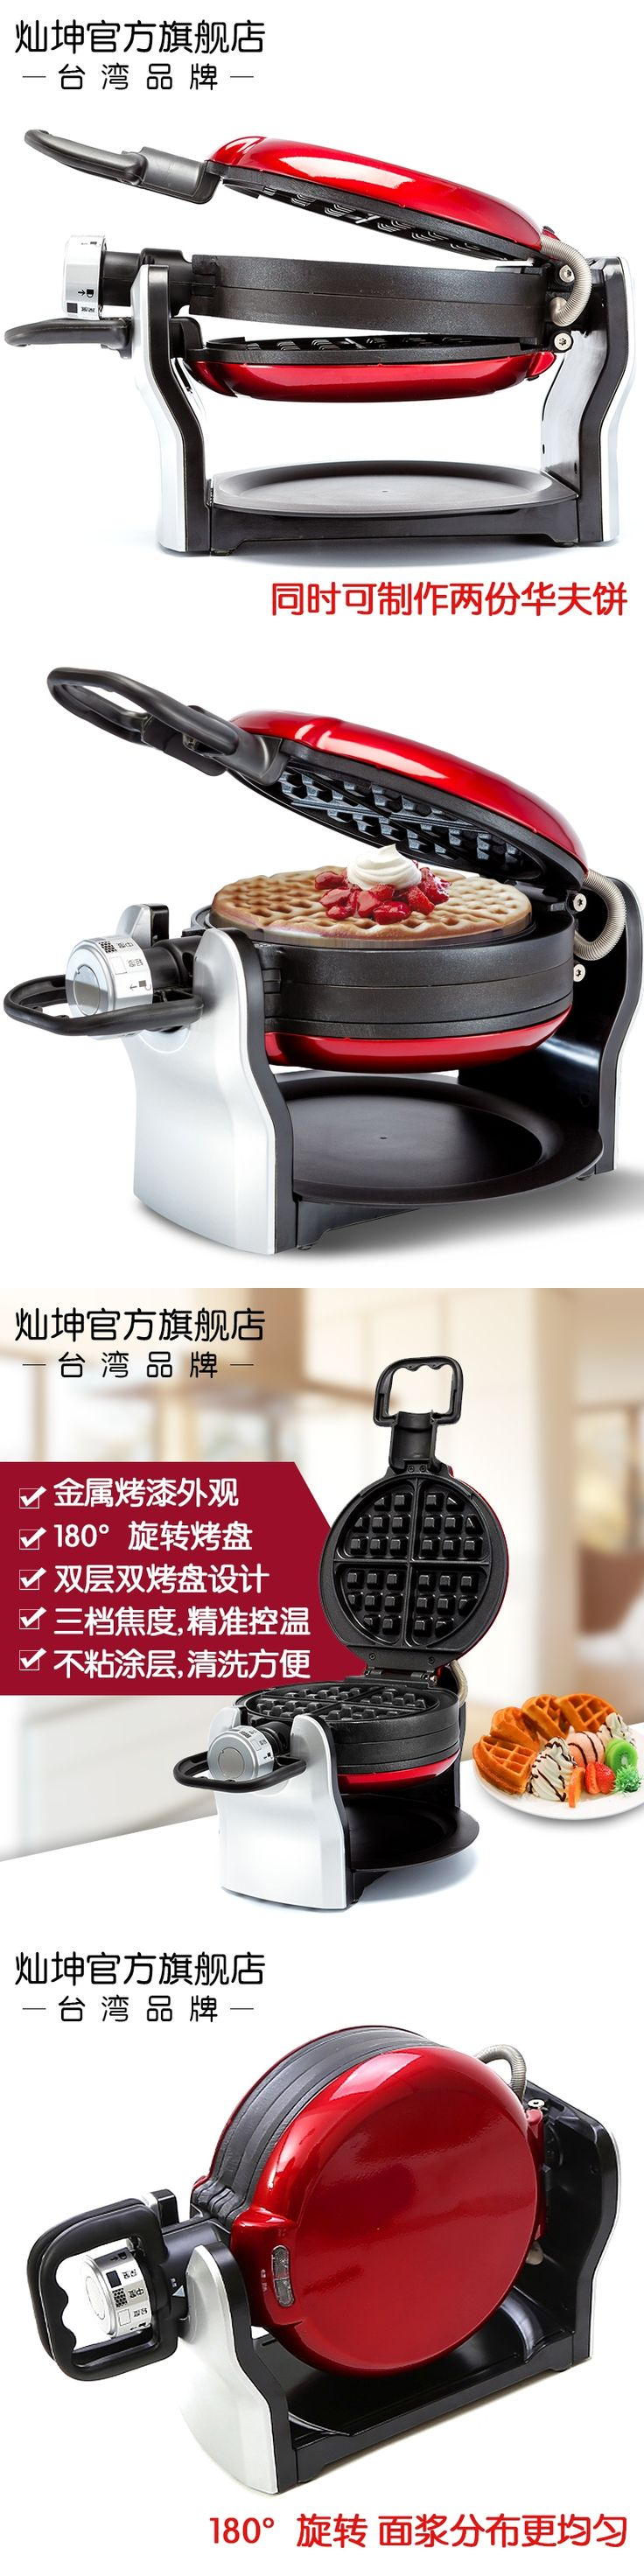 Eupa Multifunction Electric Rotary Waffle Maker  Electric Baking Pan Oven Baked Cake Pancake Machine TSK-2909BW